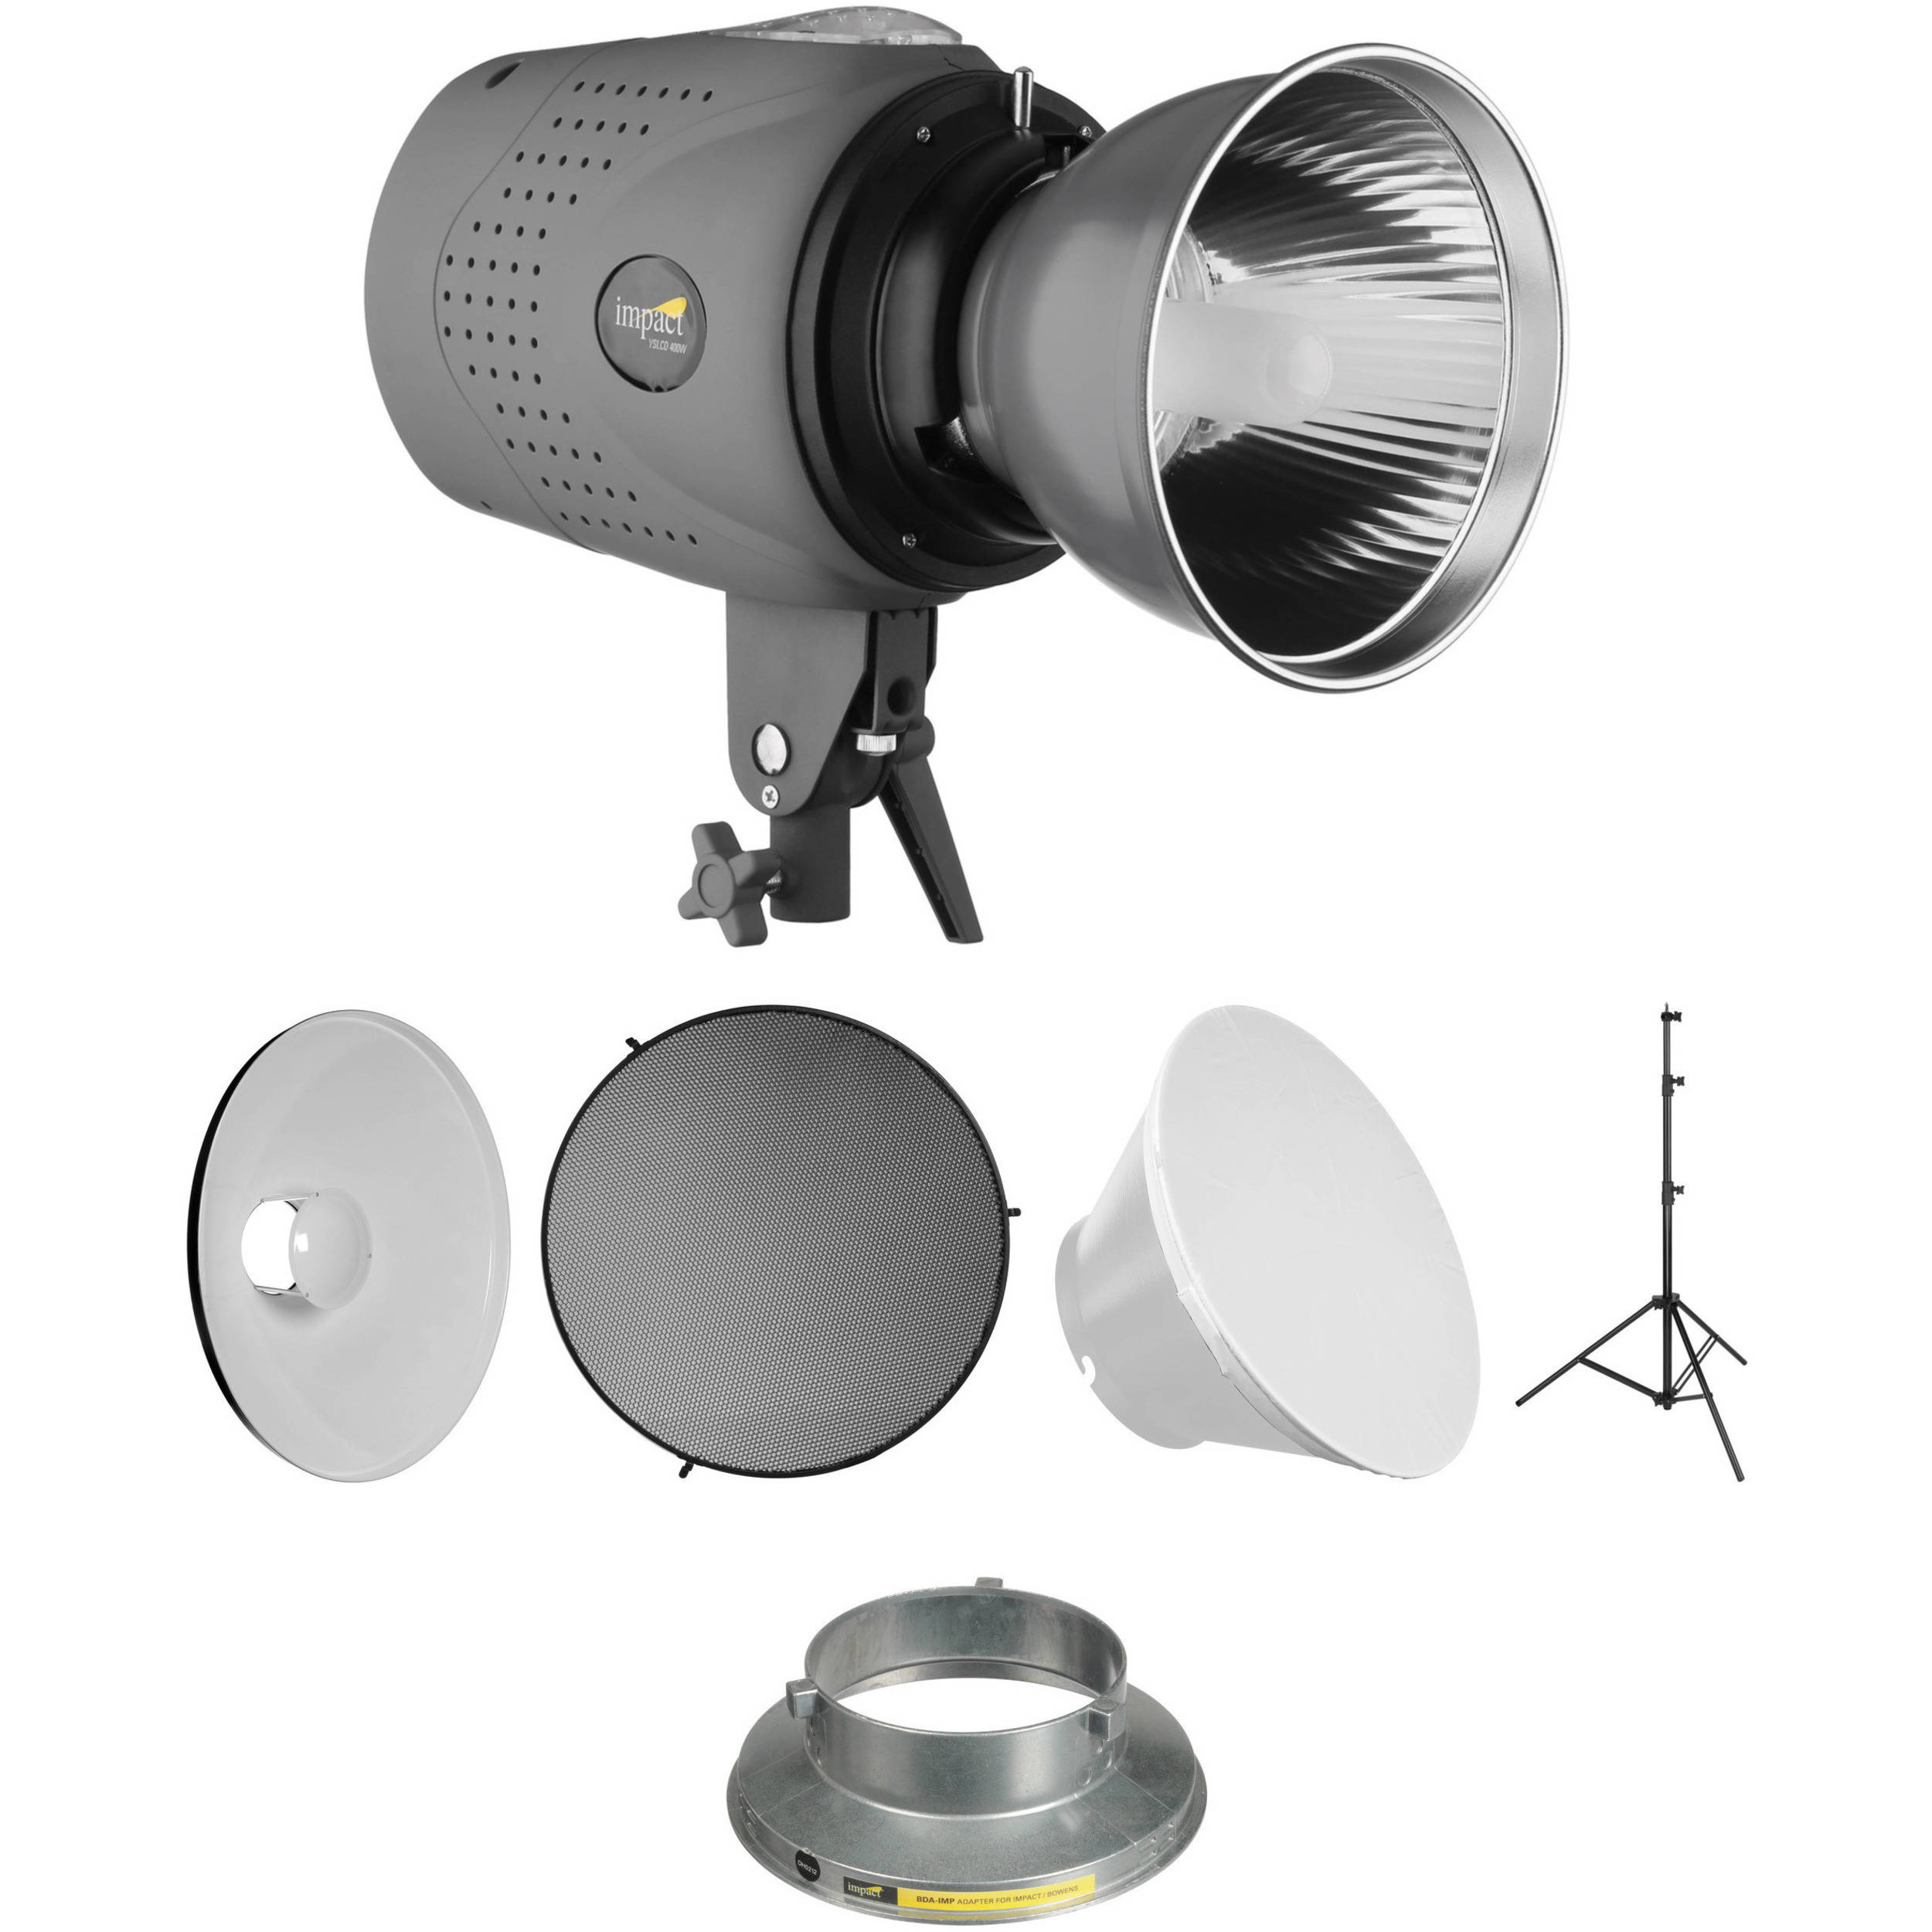 Impact Fashion Beauty Dish Kit Vslcd400 Kv Bh Photo Video Be The First To Review Recycled Circuit Board Coaster Cancel